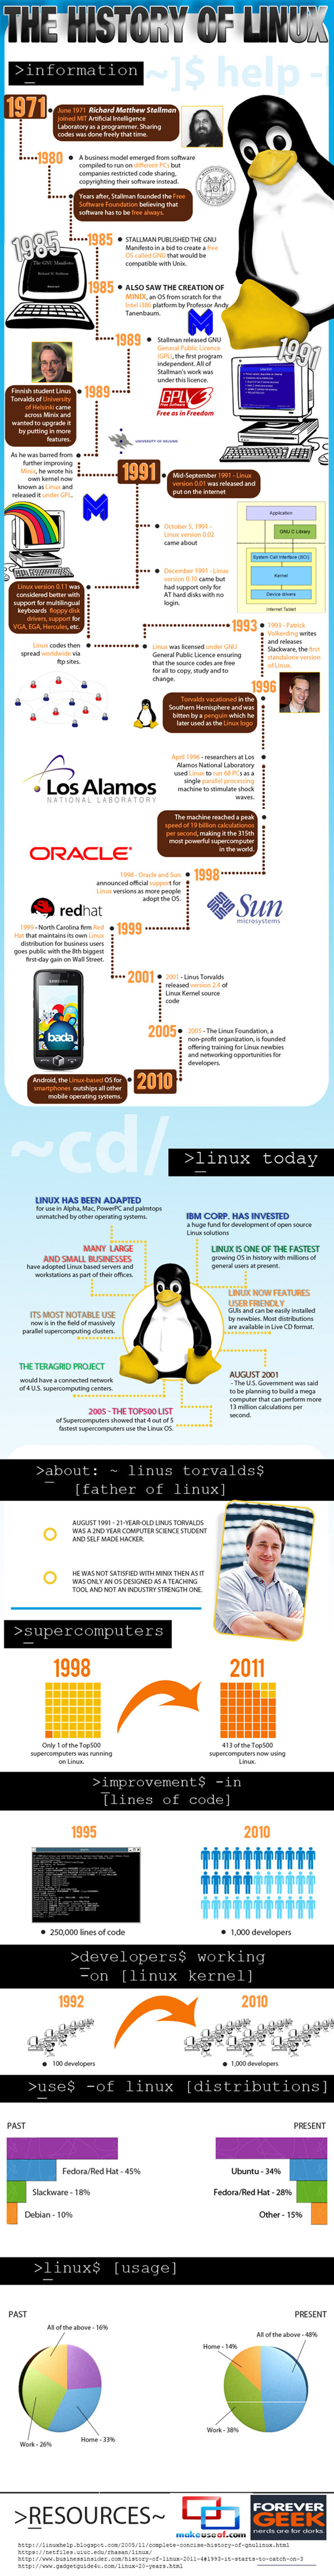 The History of Linux Infographic